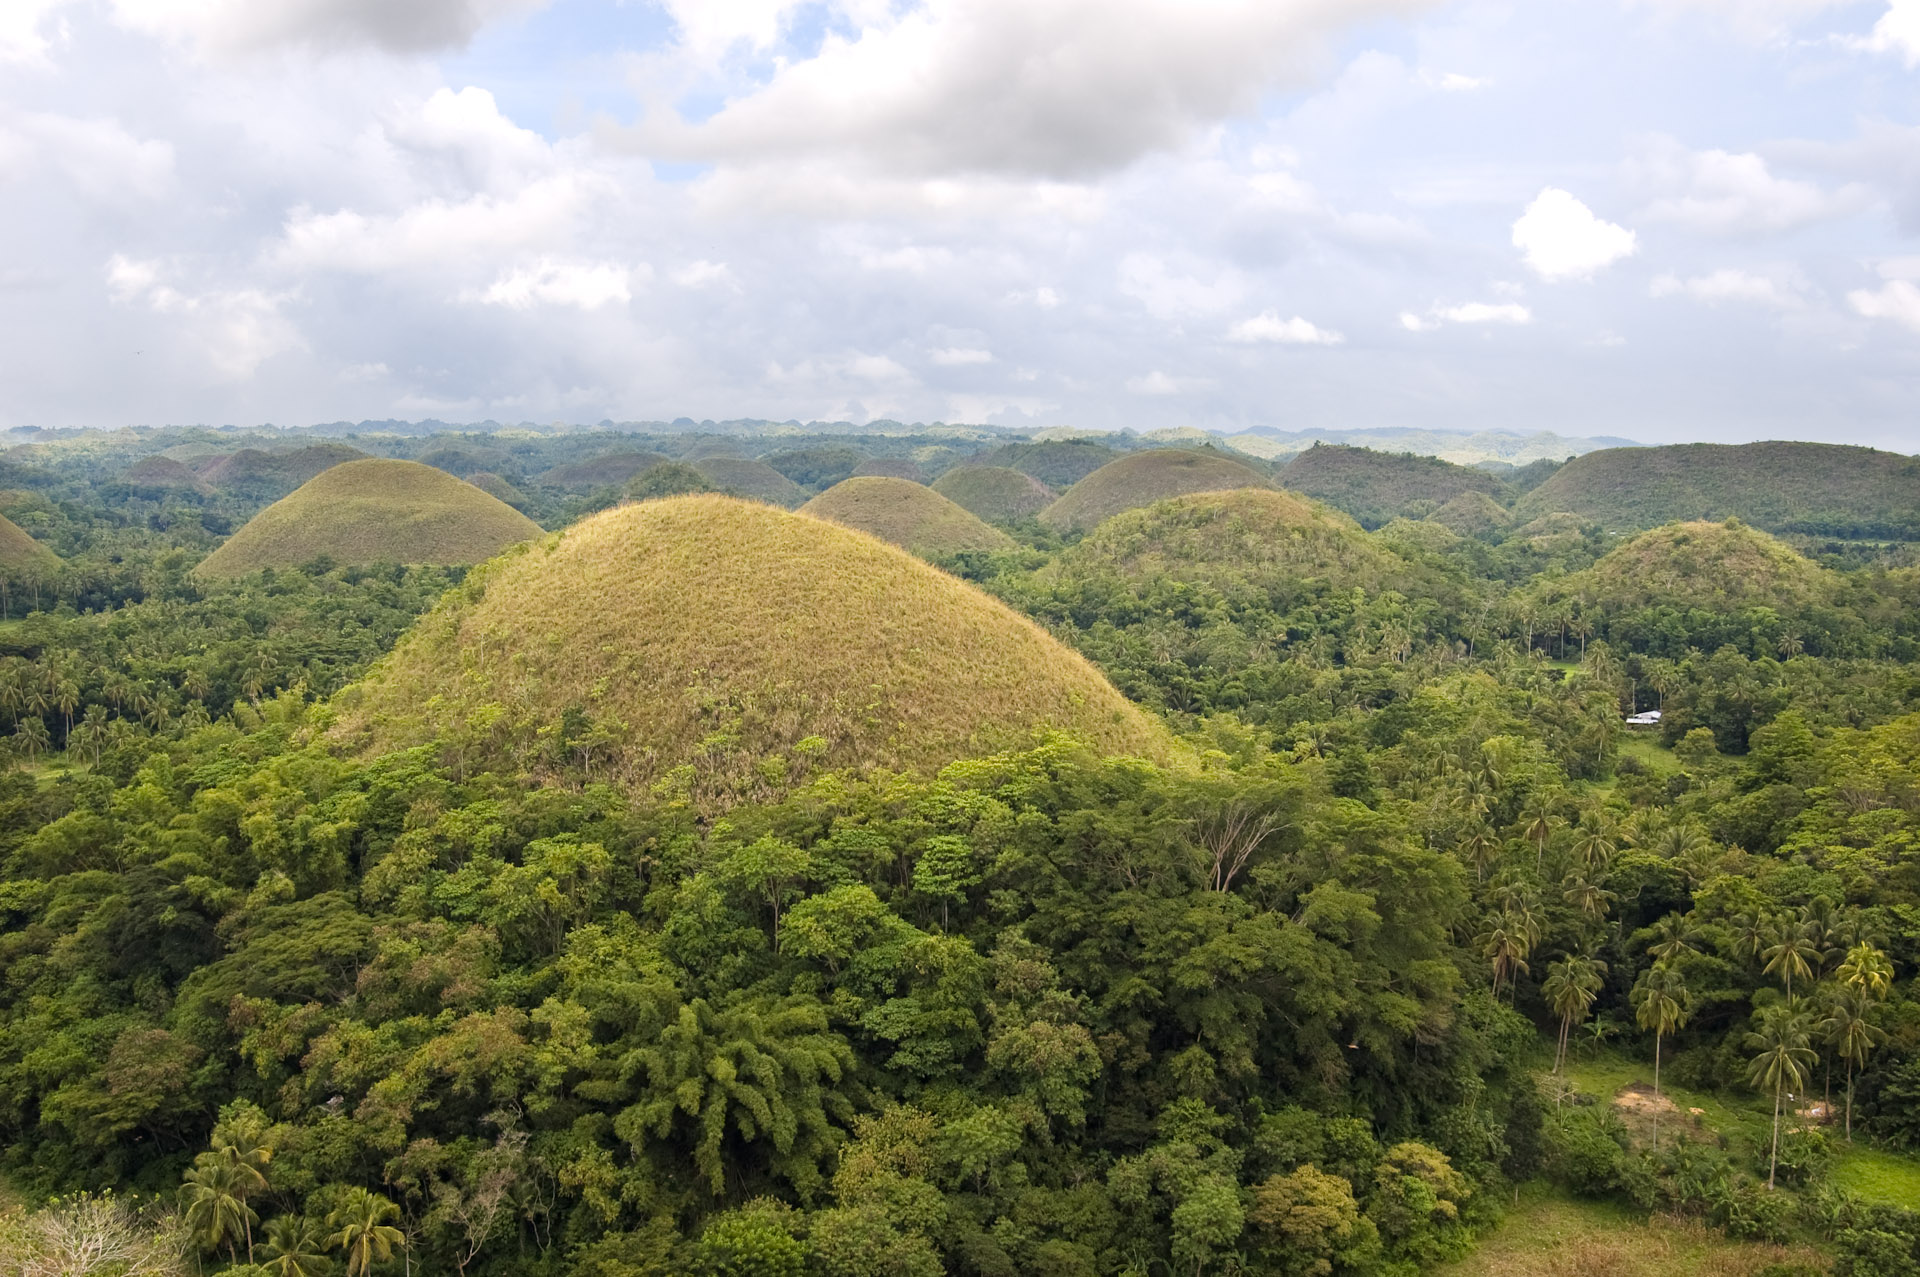 Chocolate Hills - Chocolate Hills Natural Monument